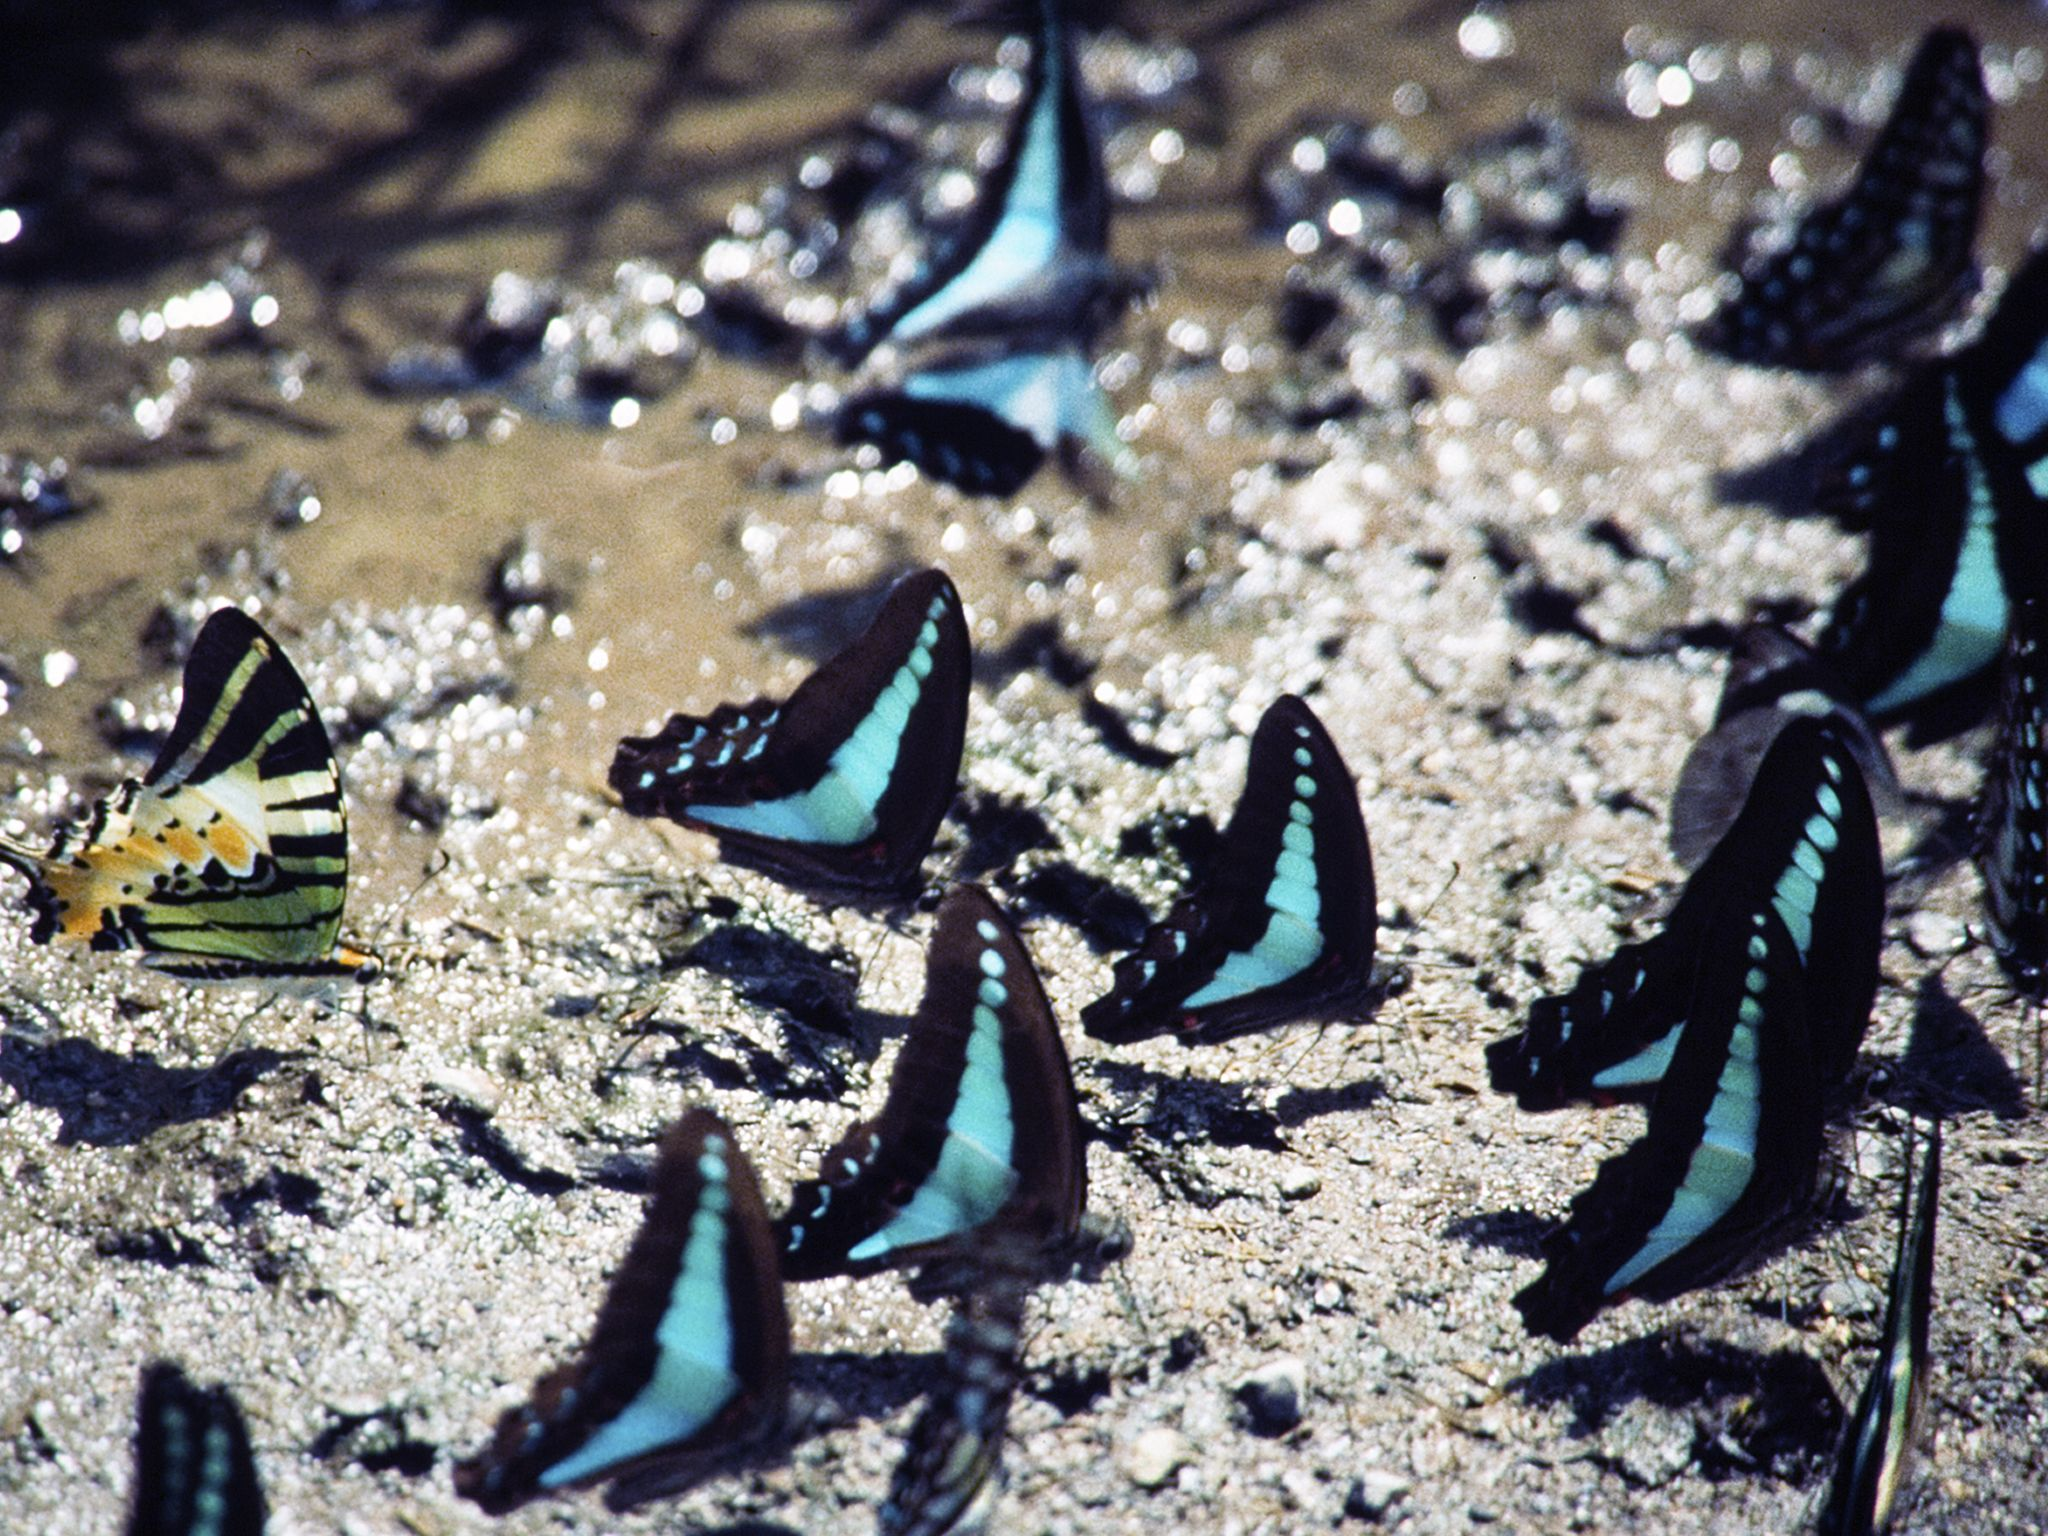 Common blue bottle butterflies, and a five-bar swallowtail. This image is from Wild Indonesia. [Photo of the day - April 2015]